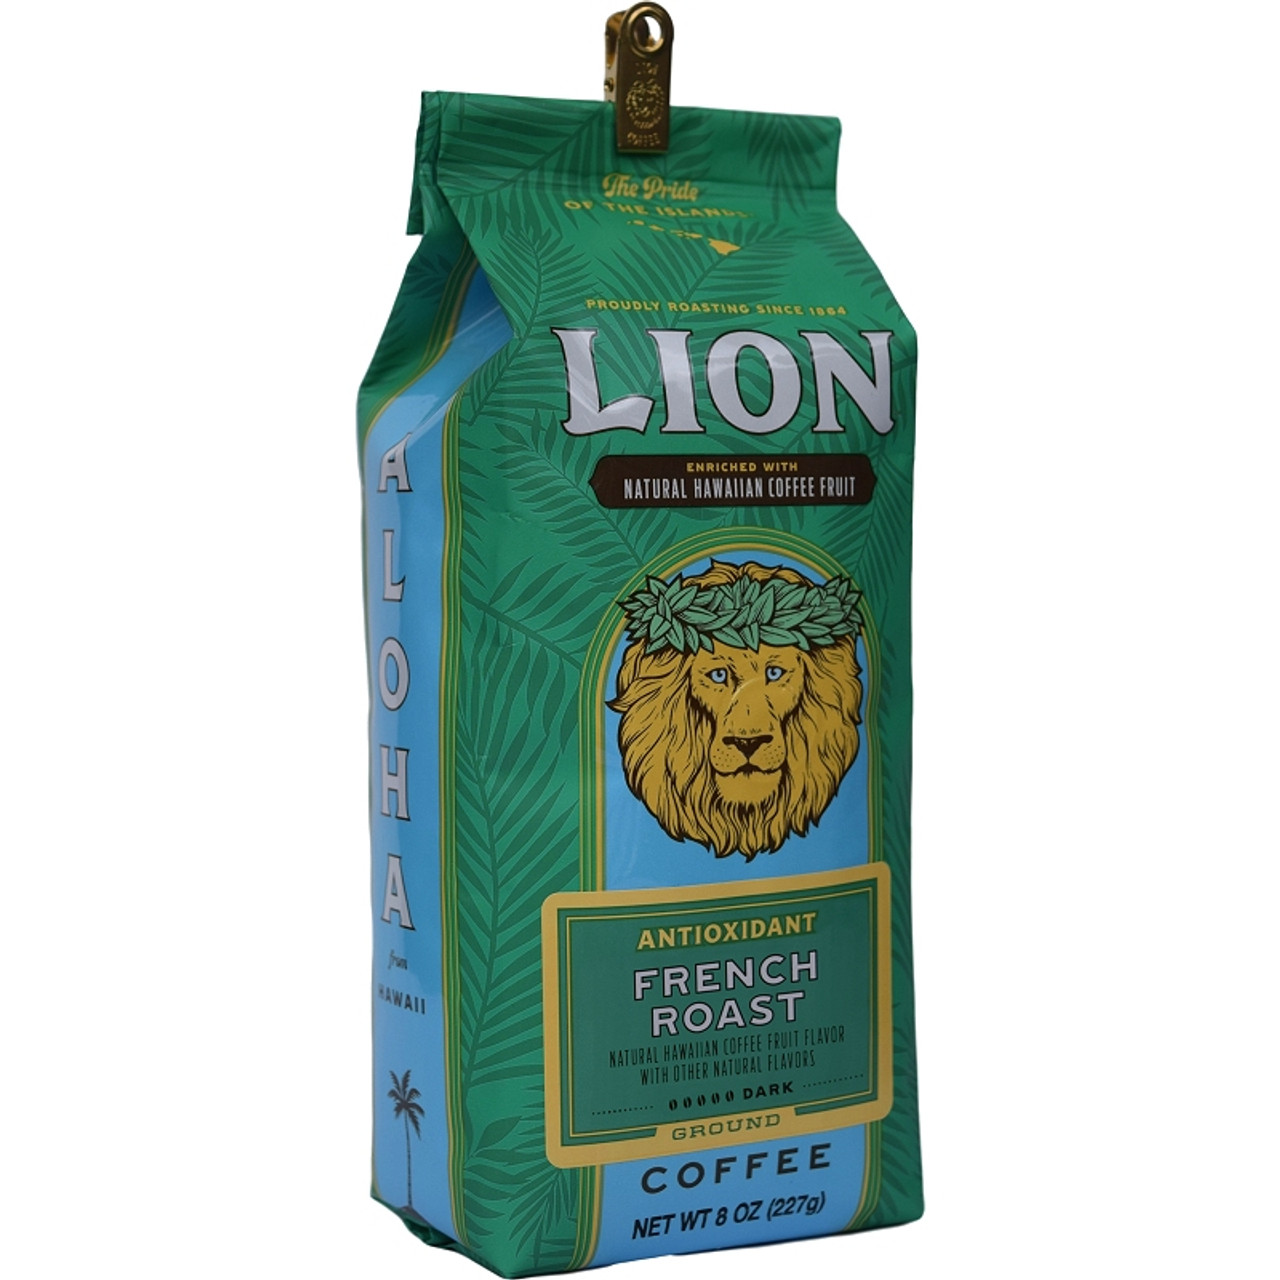 Antioxidant Enriched French Roast